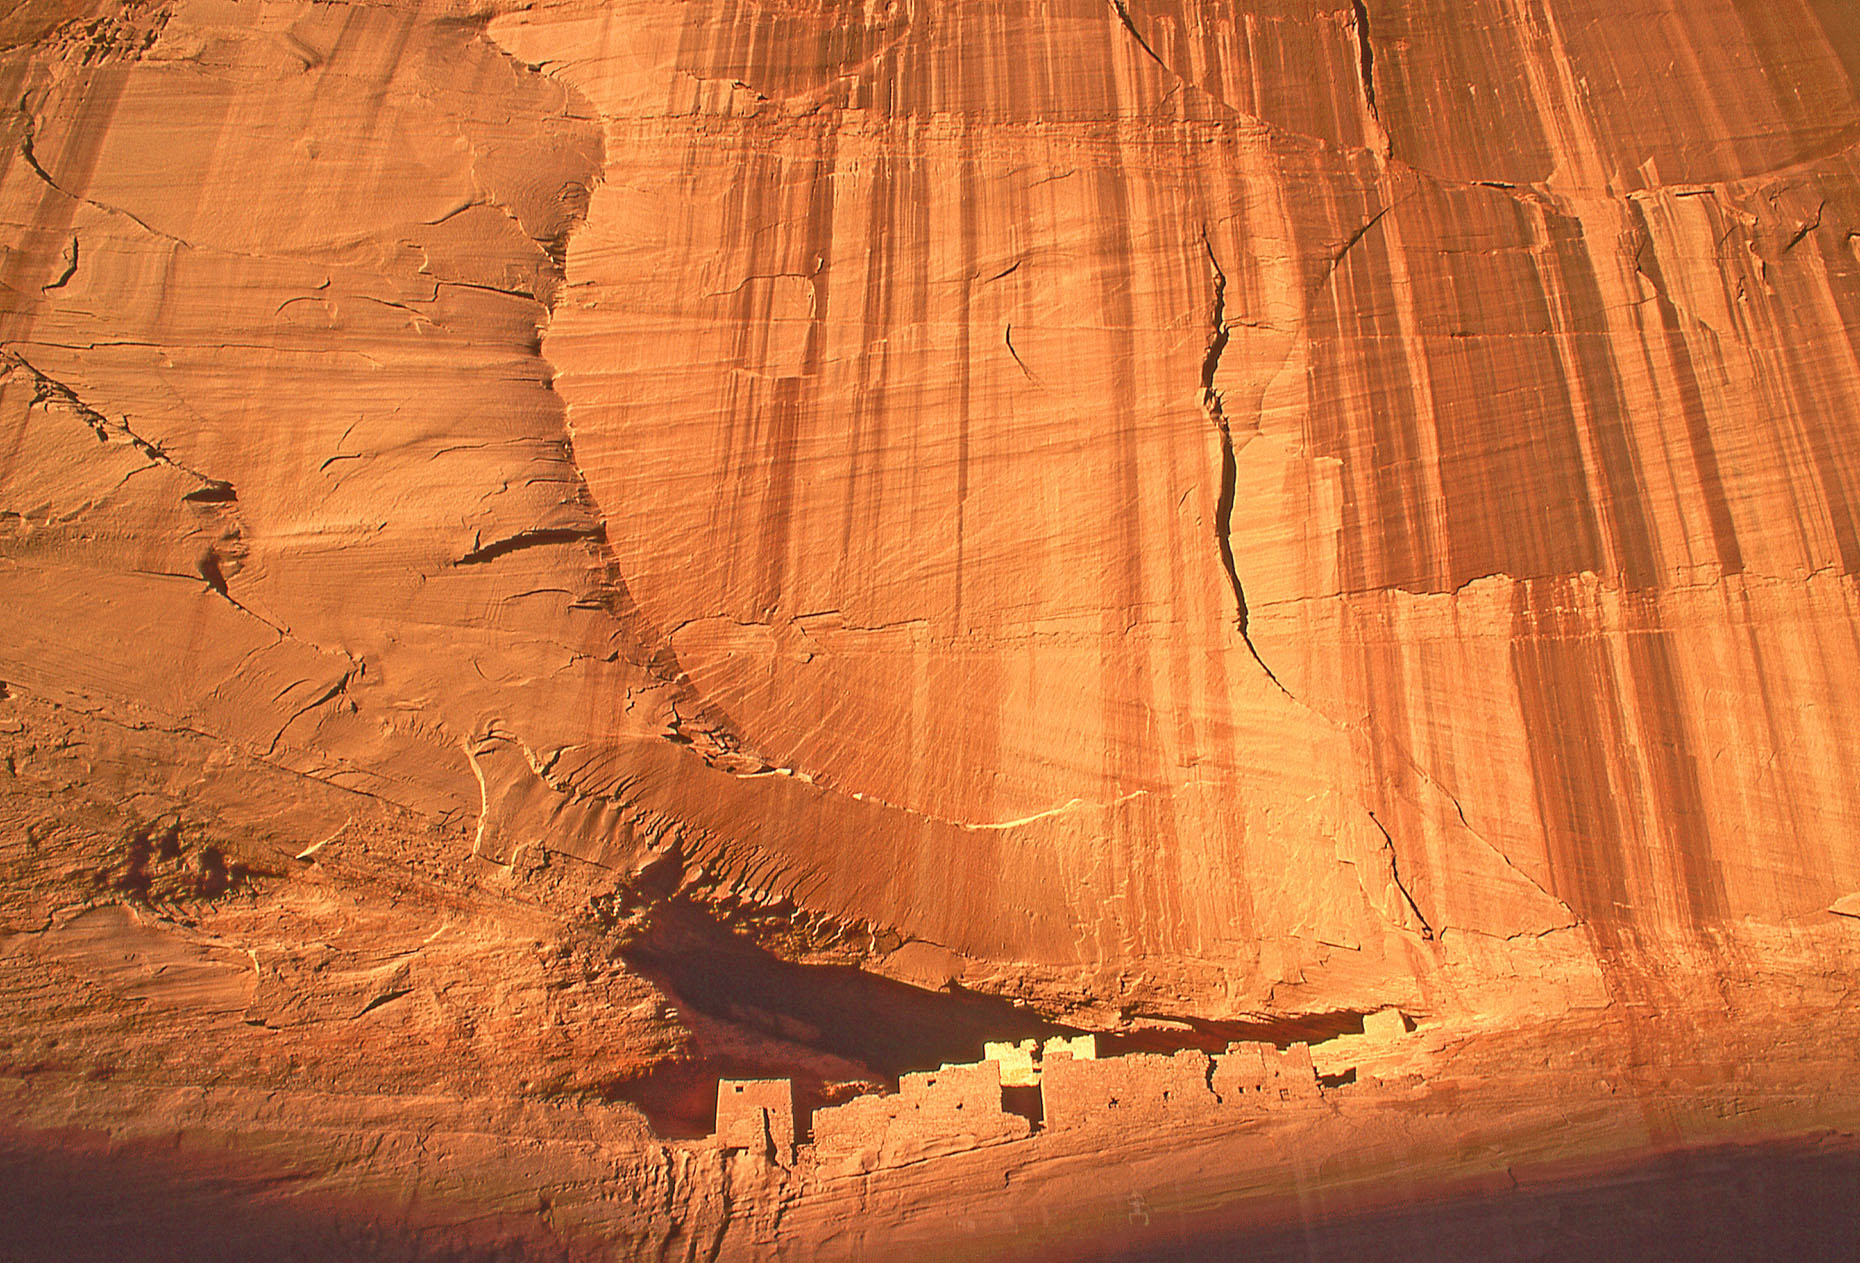 White House cliff dwelling, John Annerino, Canyon de Chelly National Monument, AZ